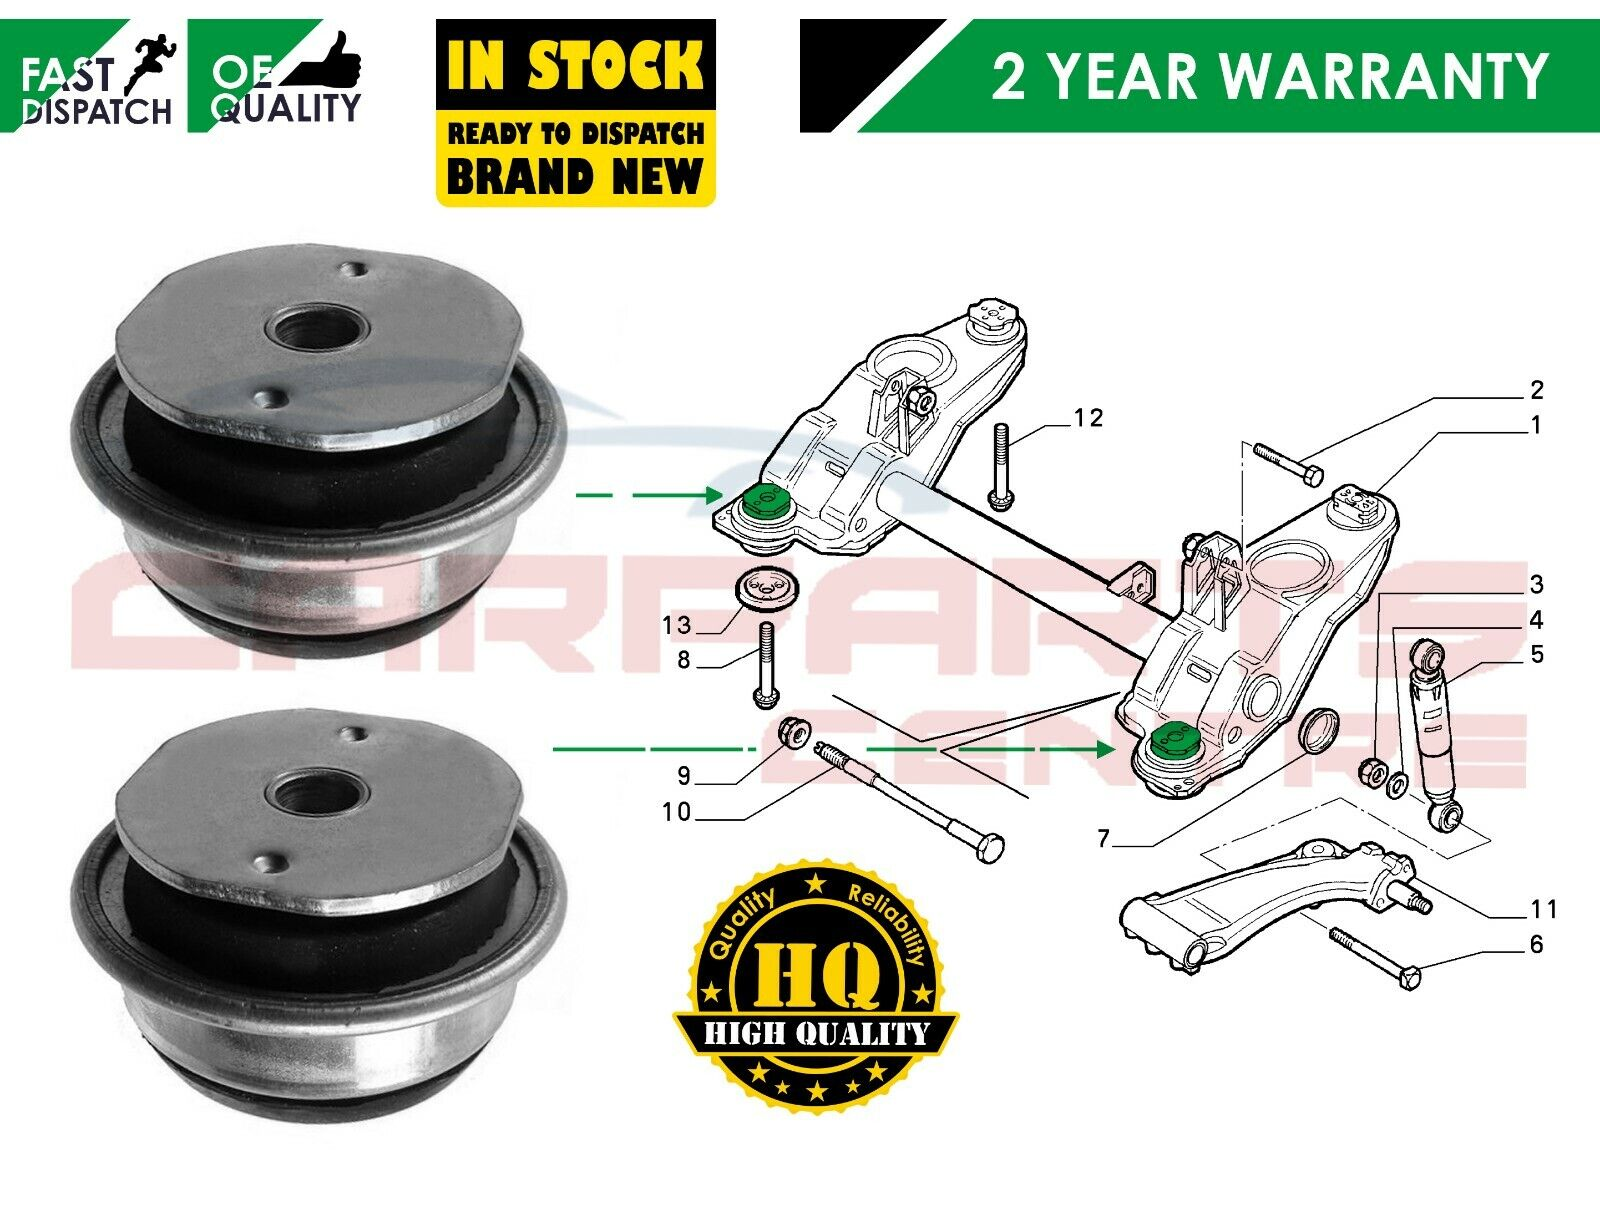 Anti-Roll/Sway Bars Vehicle Parts & Accessories FIAT MULTIPLA 1.9 JTD ANTI  ROLL BAR BUSH BUSHES FIT ALL MODELS ALL YEARS X 2